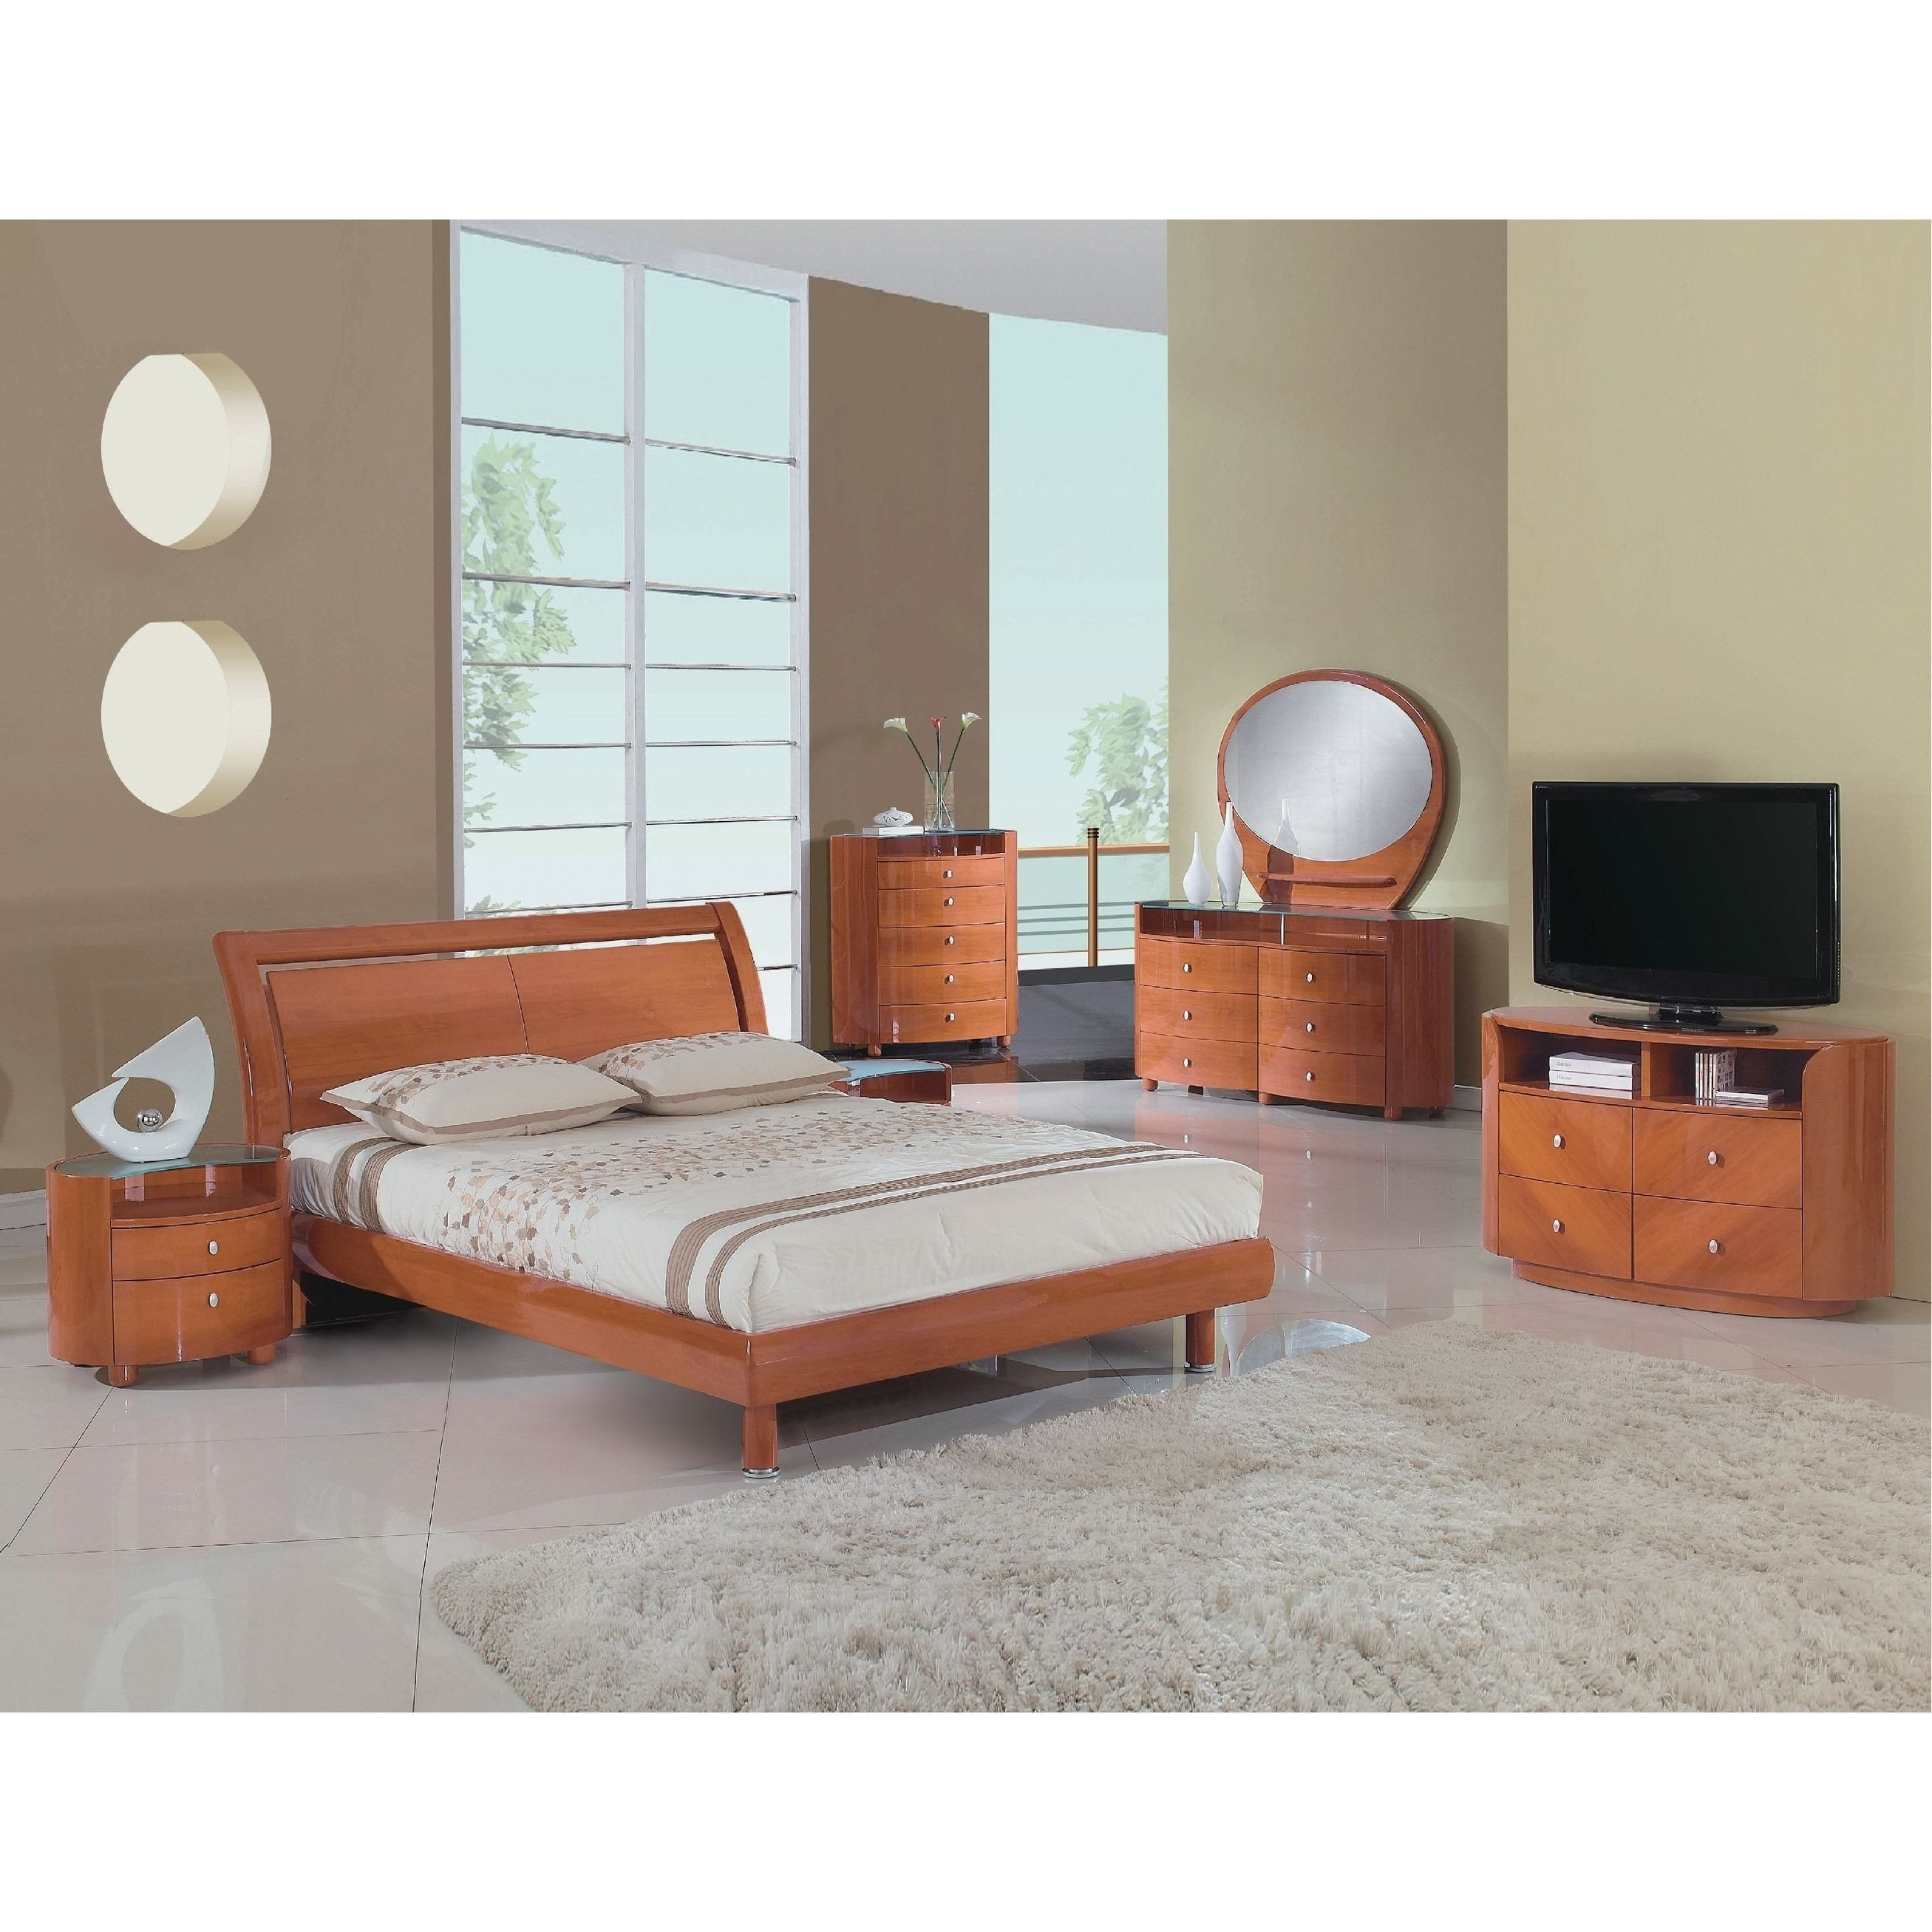 Nice Cheap Bedroom Set Beautiful Line Shopping Bedding Furniture Electronics Jewelry